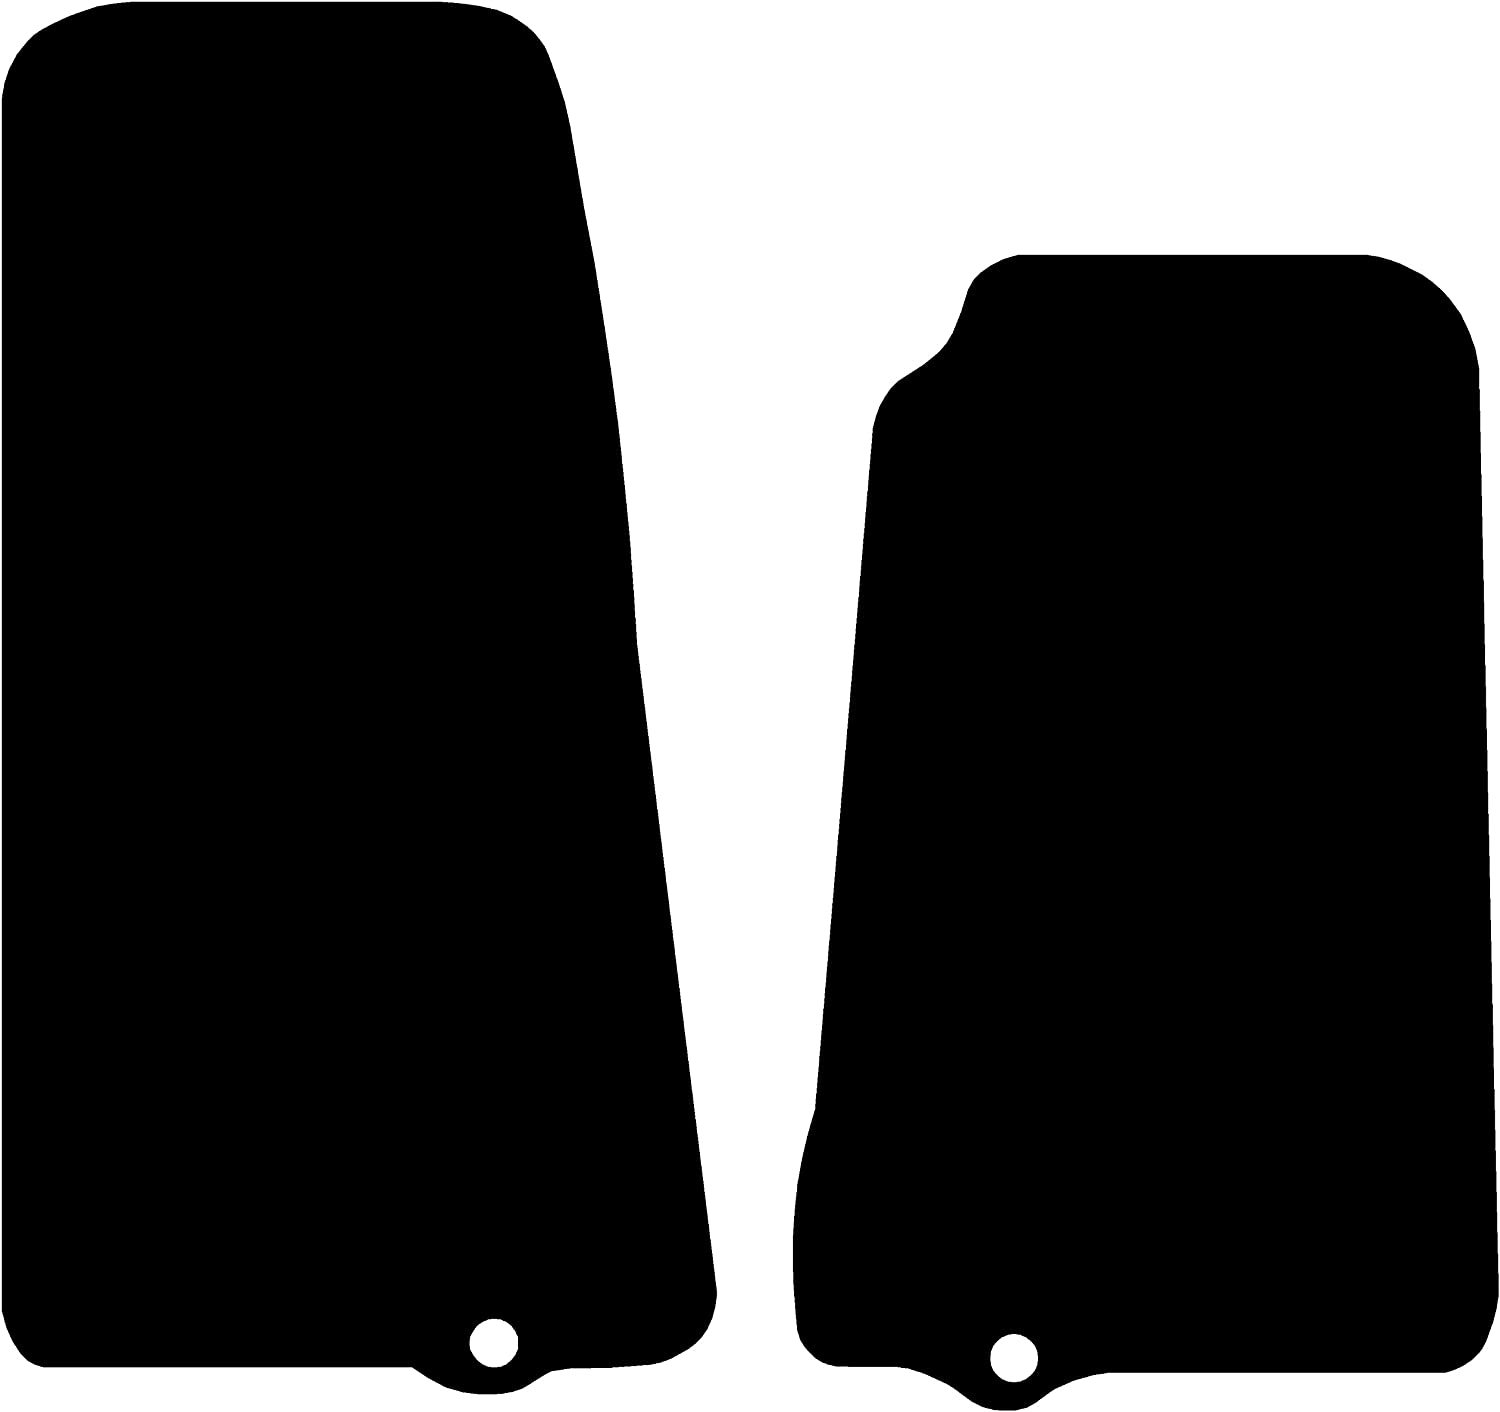 2006-2012 3mm Rubber Connected Essentials CEM300 Rubber Car Mats Round Clips for EOS Black with Black Trim